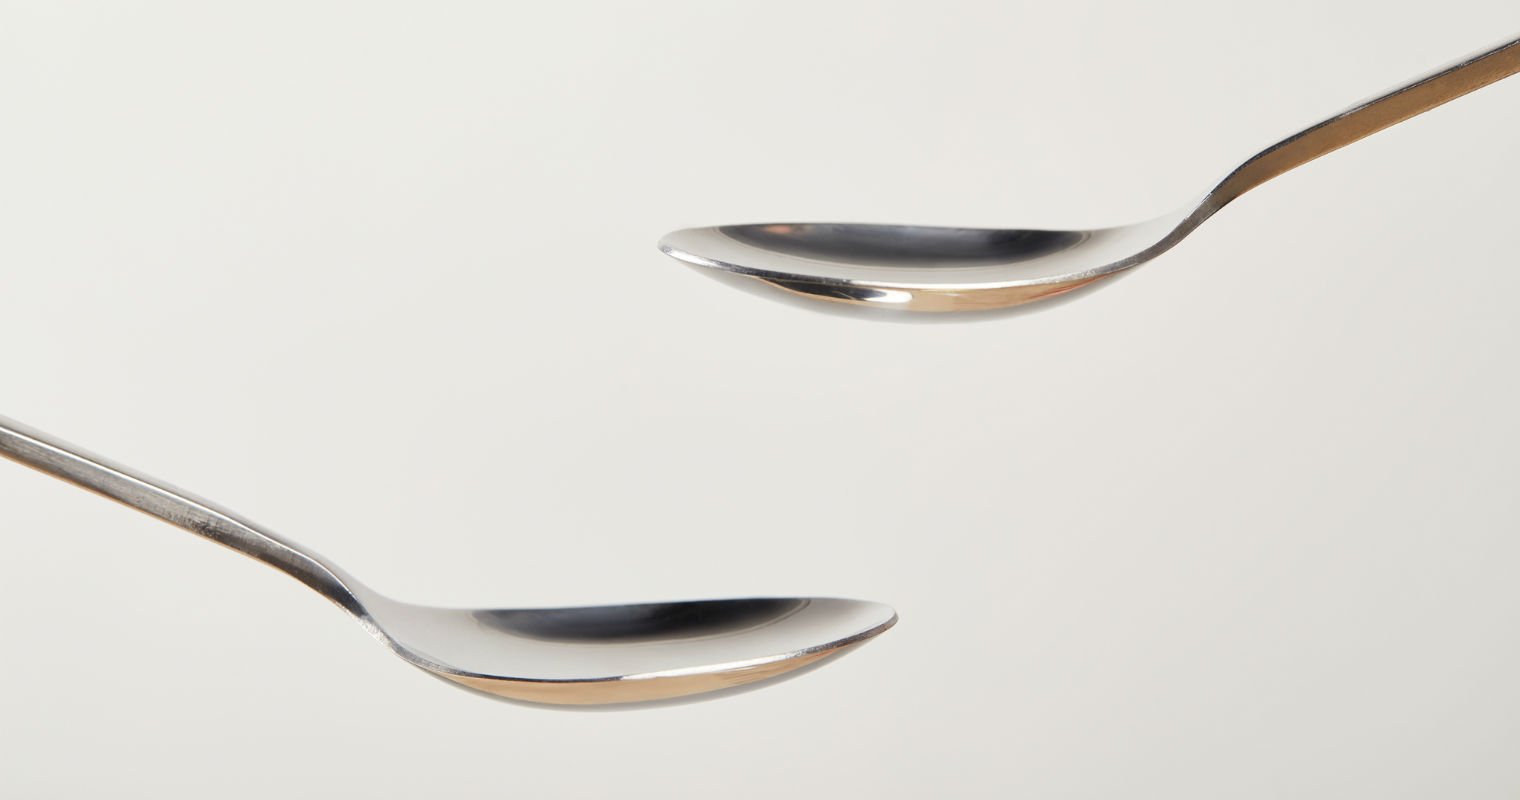 Using a cold spoon can relief under eye bags, and reduce puffiness